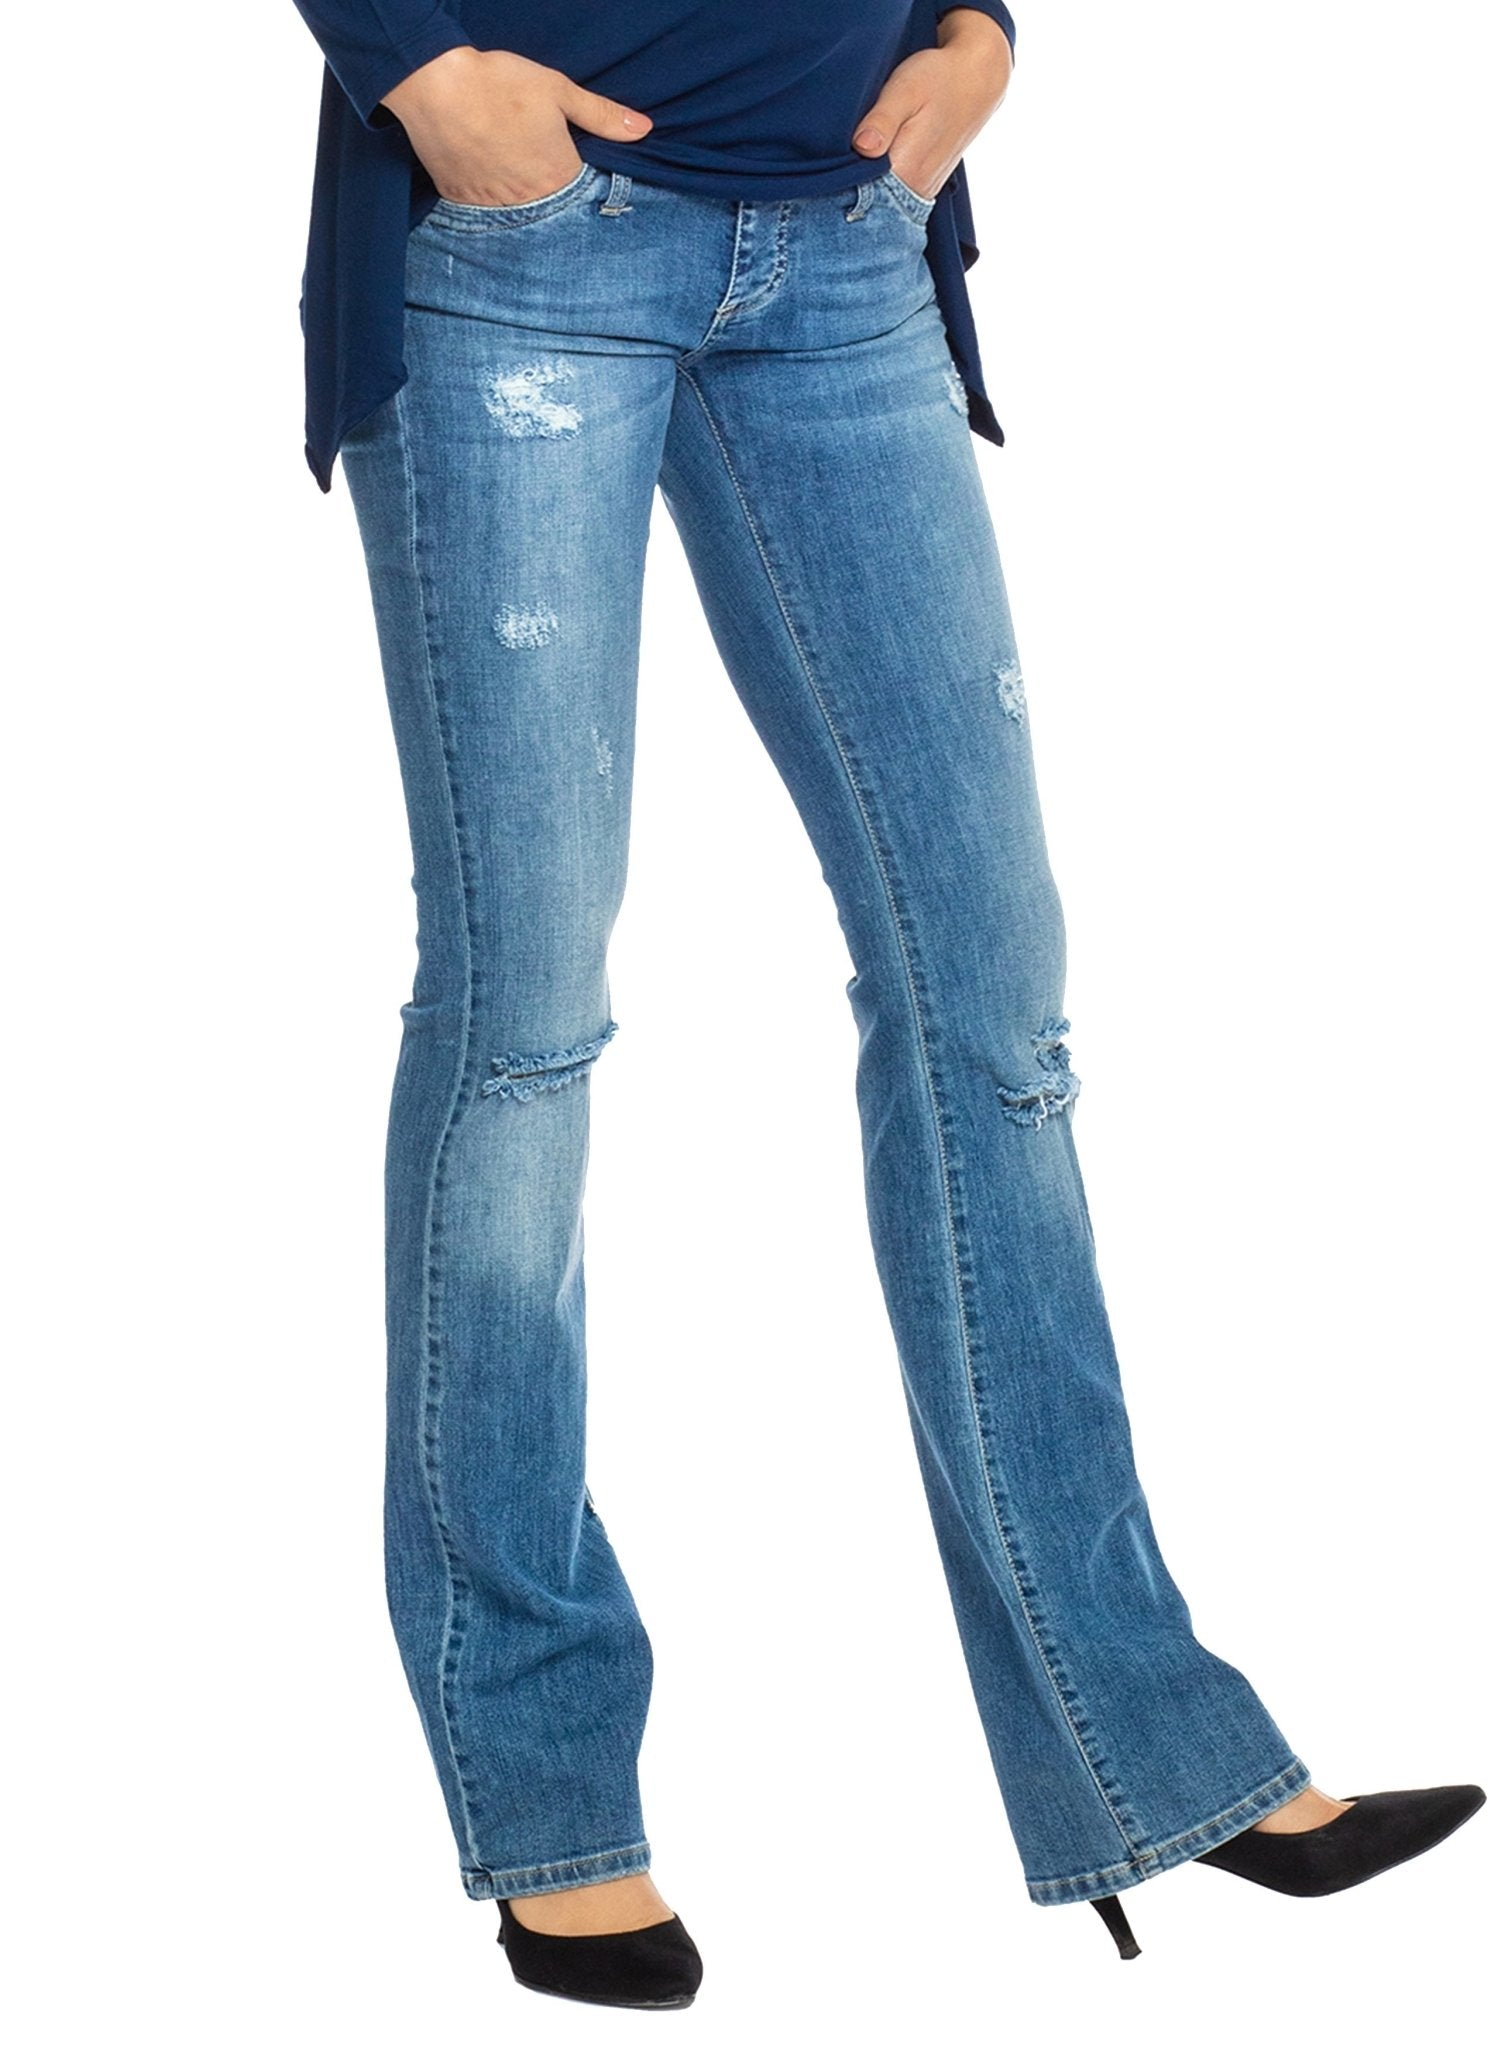 Slim Bootcut Maternity Jeans - Light Wash - Mums and Bumps